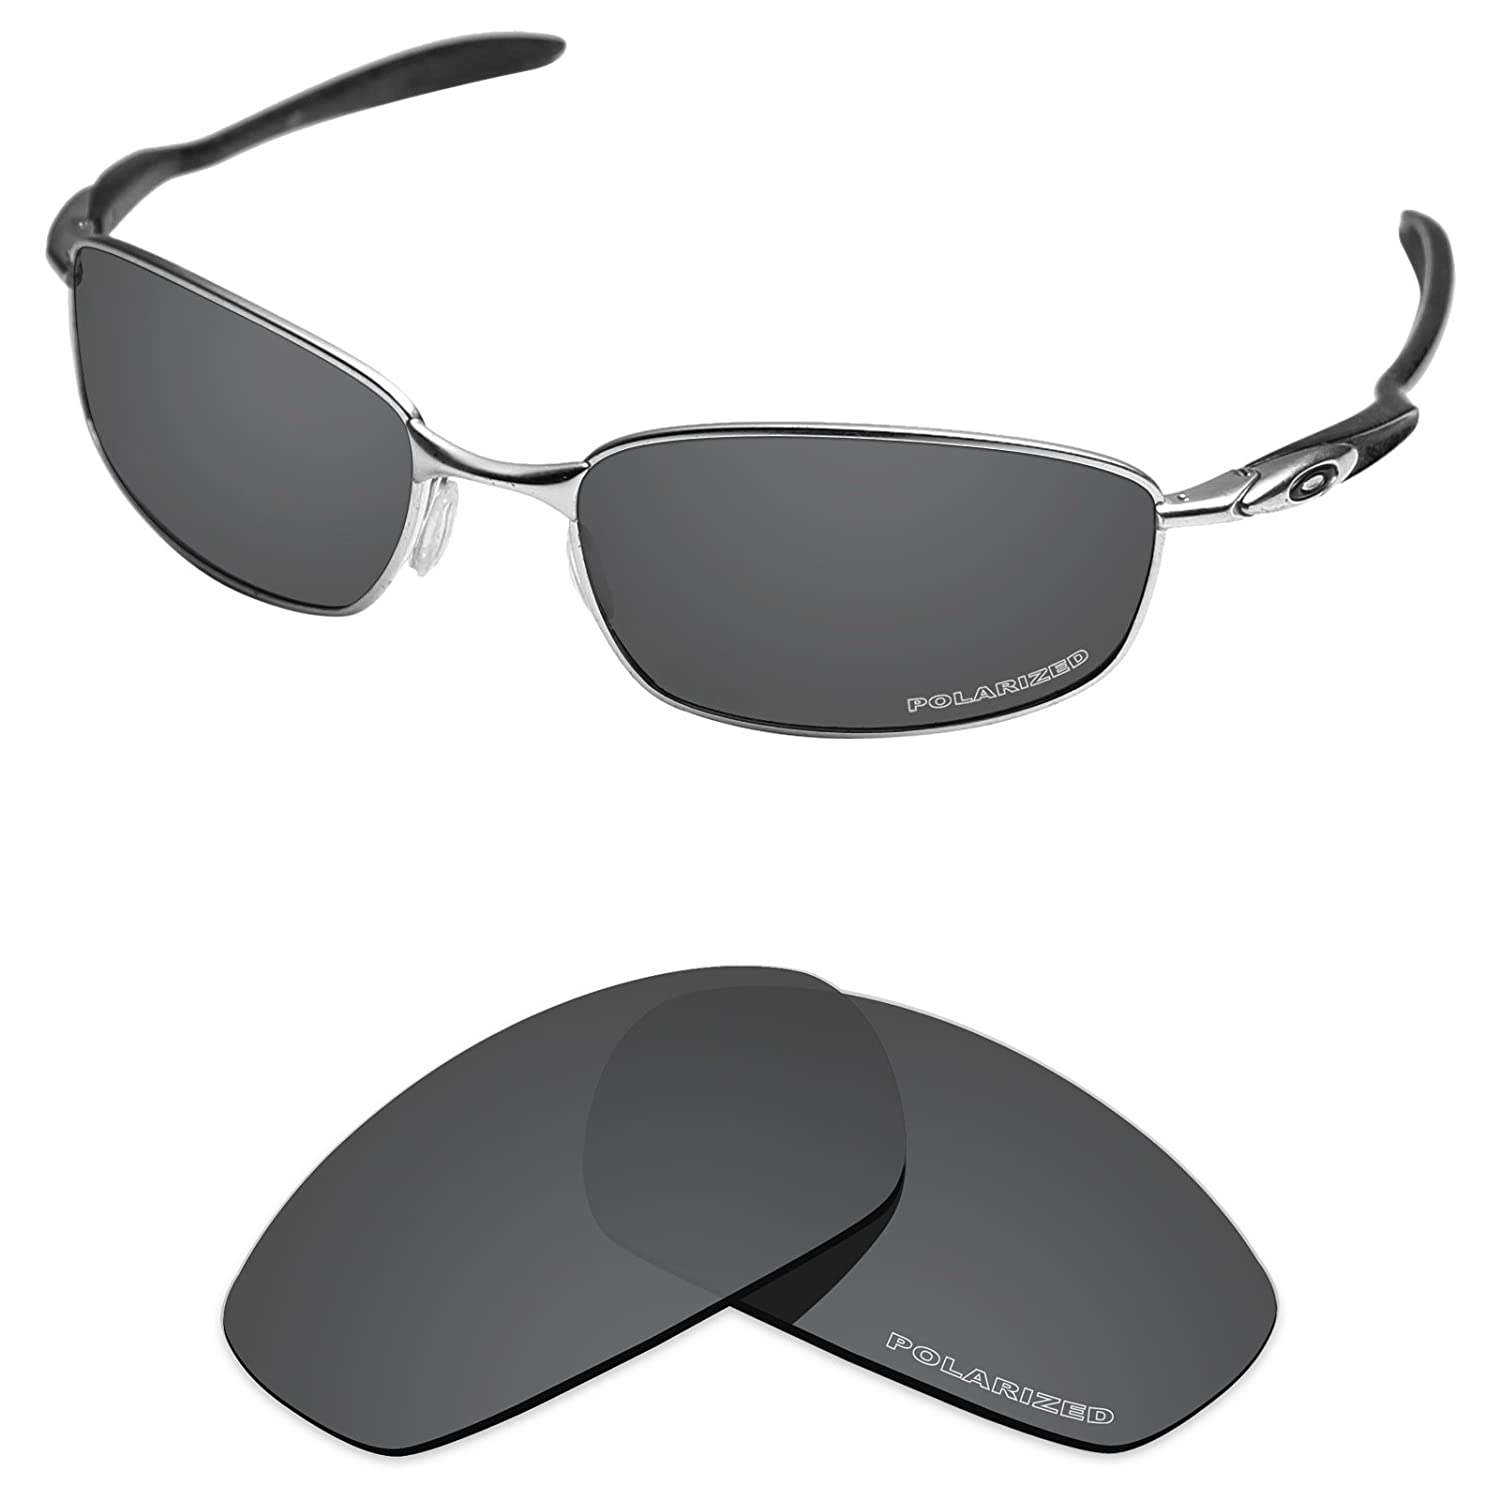 fbdcf82011 Oakley Blender Polarized Athletic Performance Sport Sunglasses One Size  Source · Amazon com Tintart Performance Lenses Compatible with Oakley